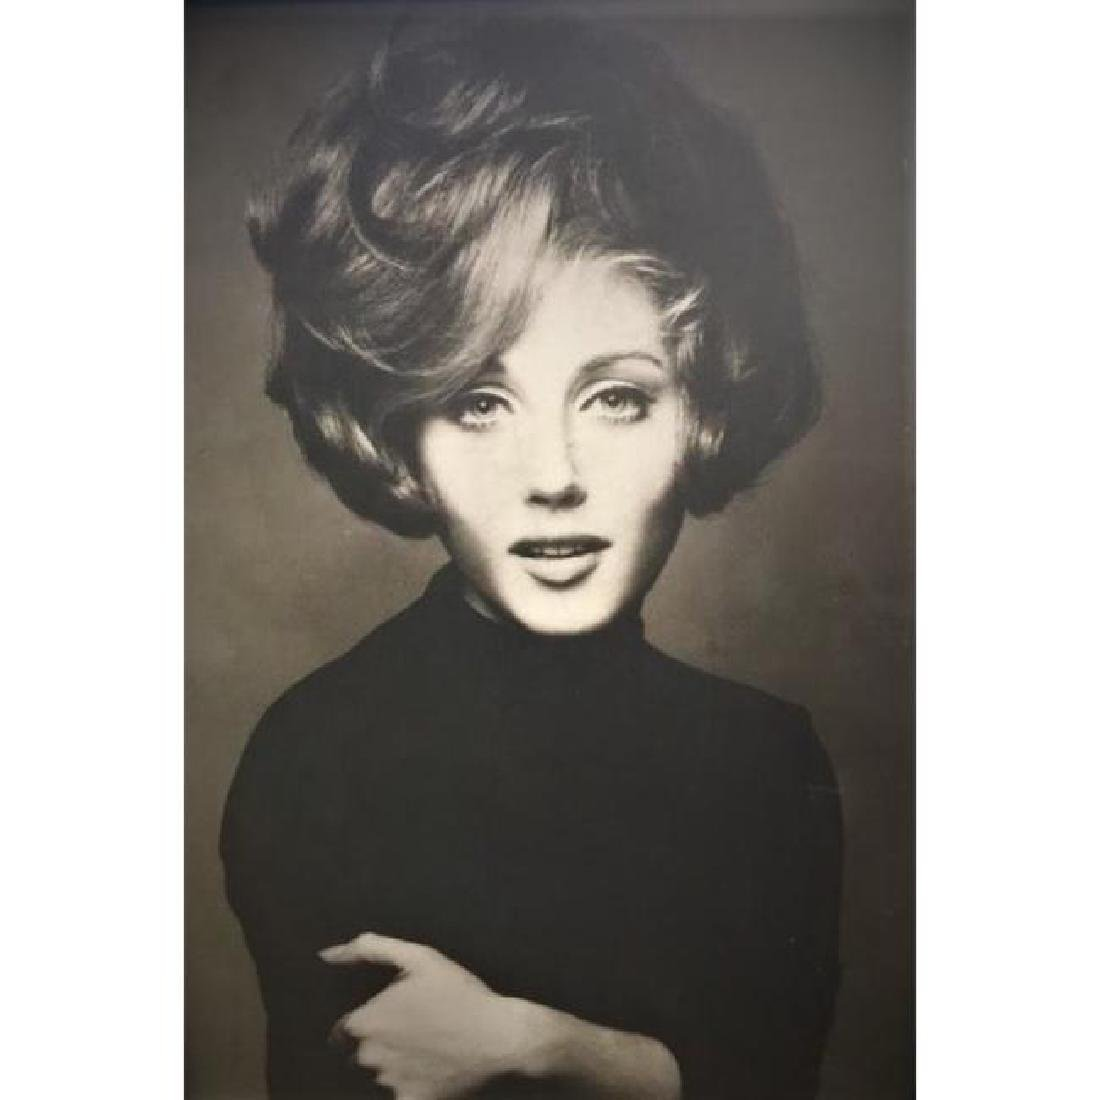 Richard Avedon Assistant Framed Photo of Lesley Gore